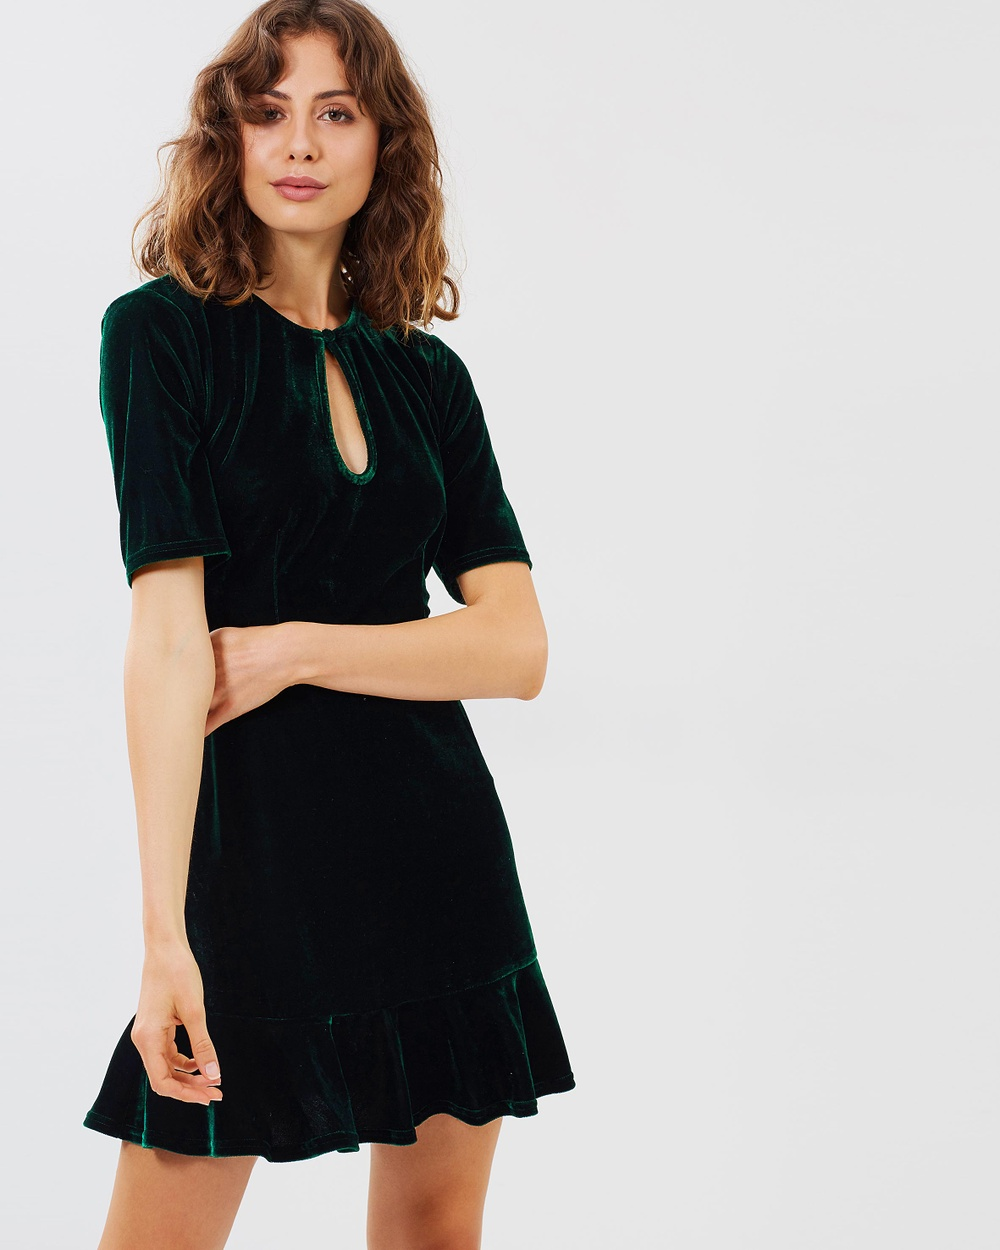 Atmos & Here ICONIC EXCLUSIVE Linda Velvet Dress Dresses Green Velvet ICONIC EXCLUSIVE Linda Velvet Dress